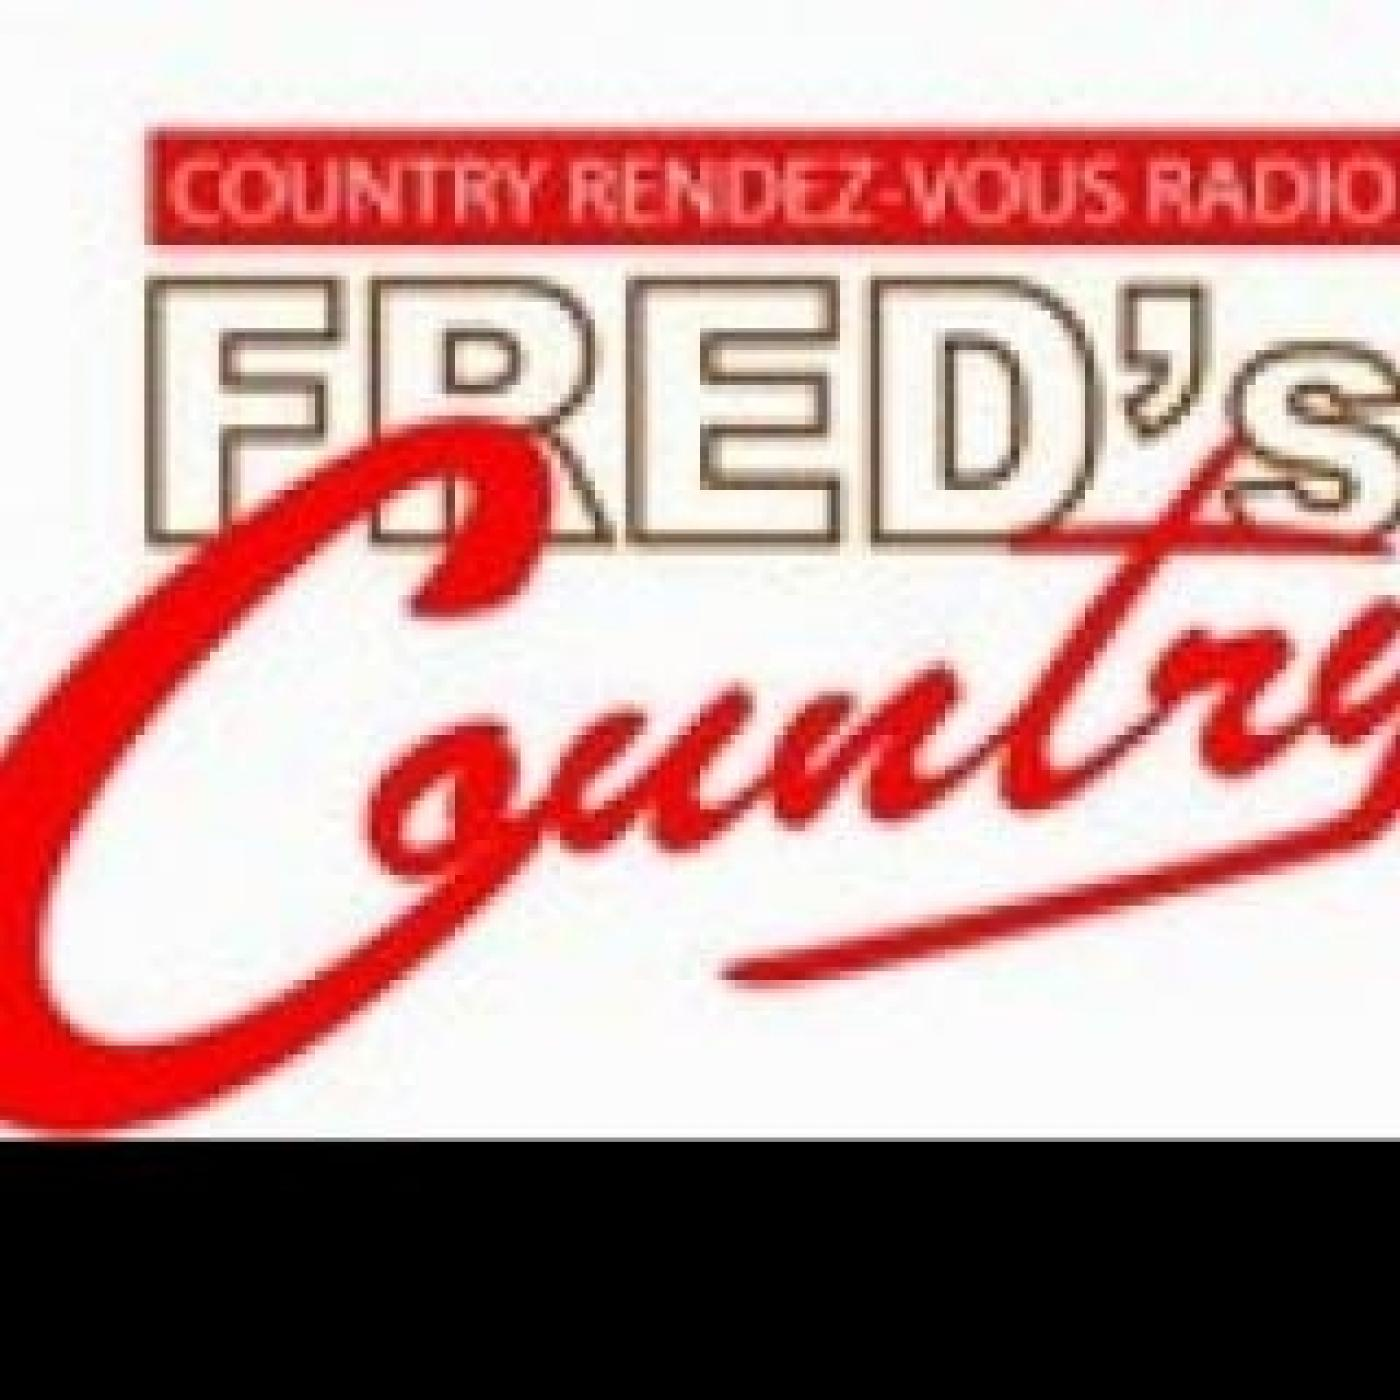 program Fred's Country